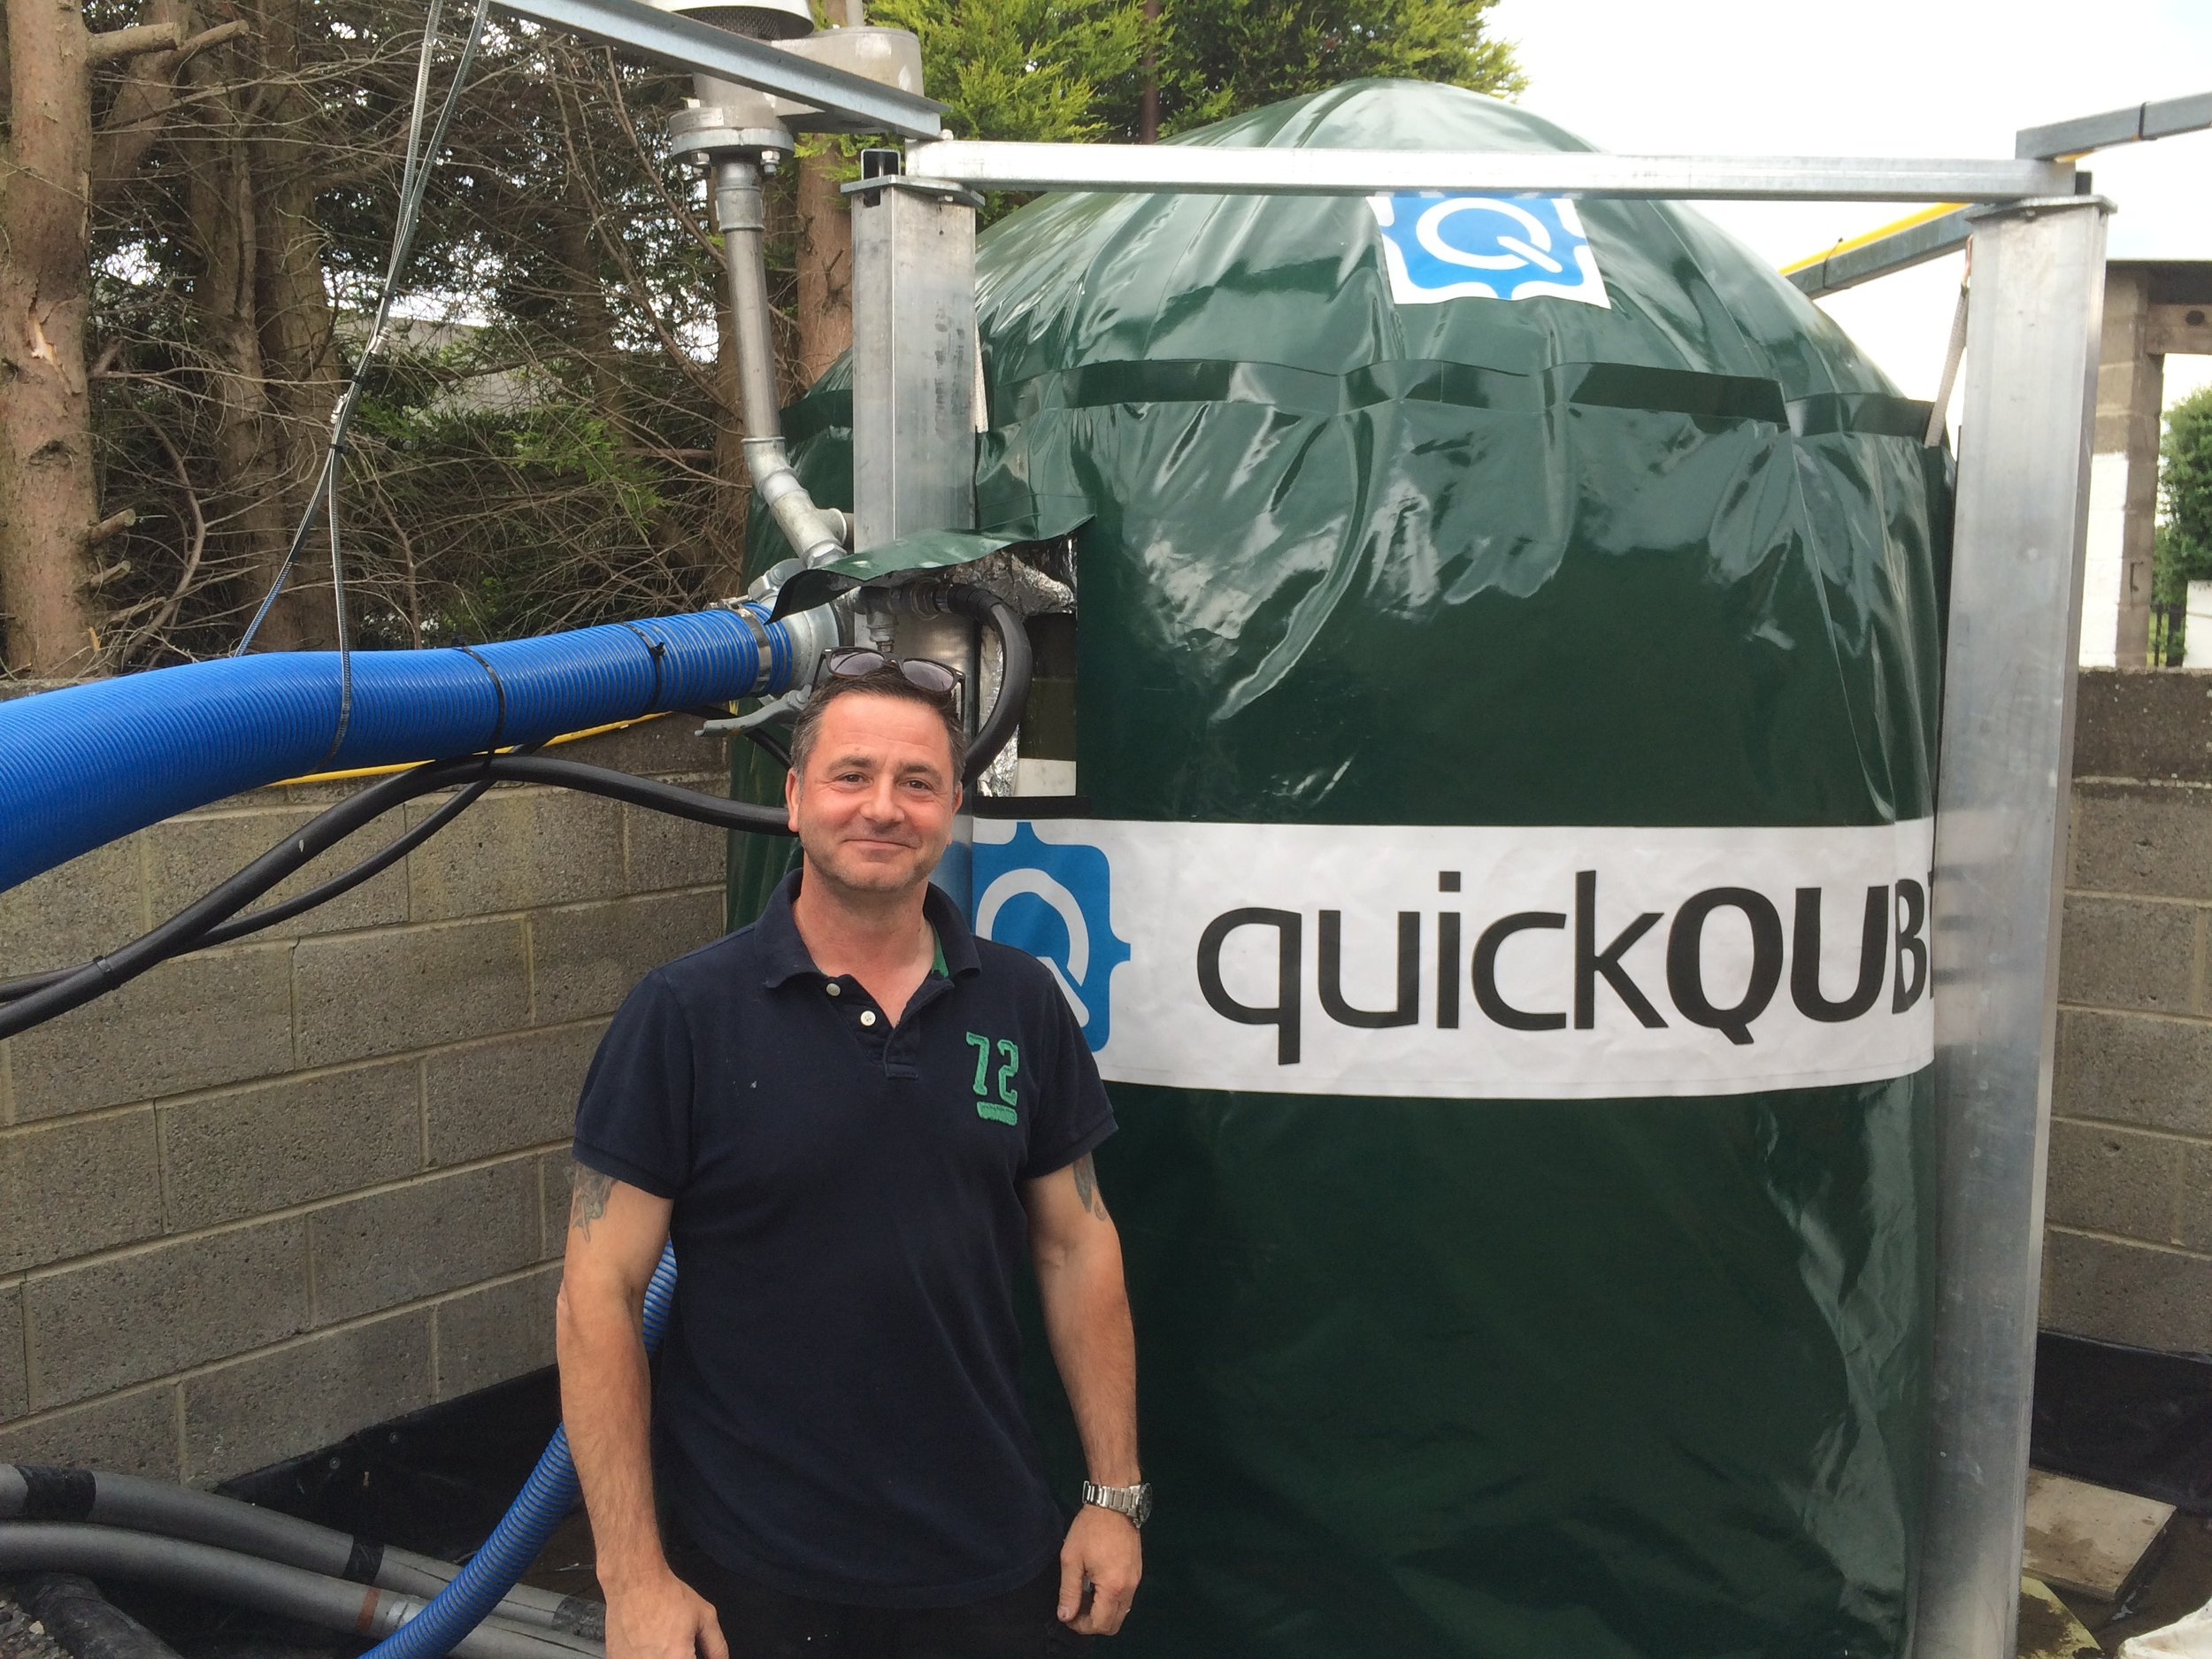 Copy of 5m3 quickQUBE, AGE Renewables